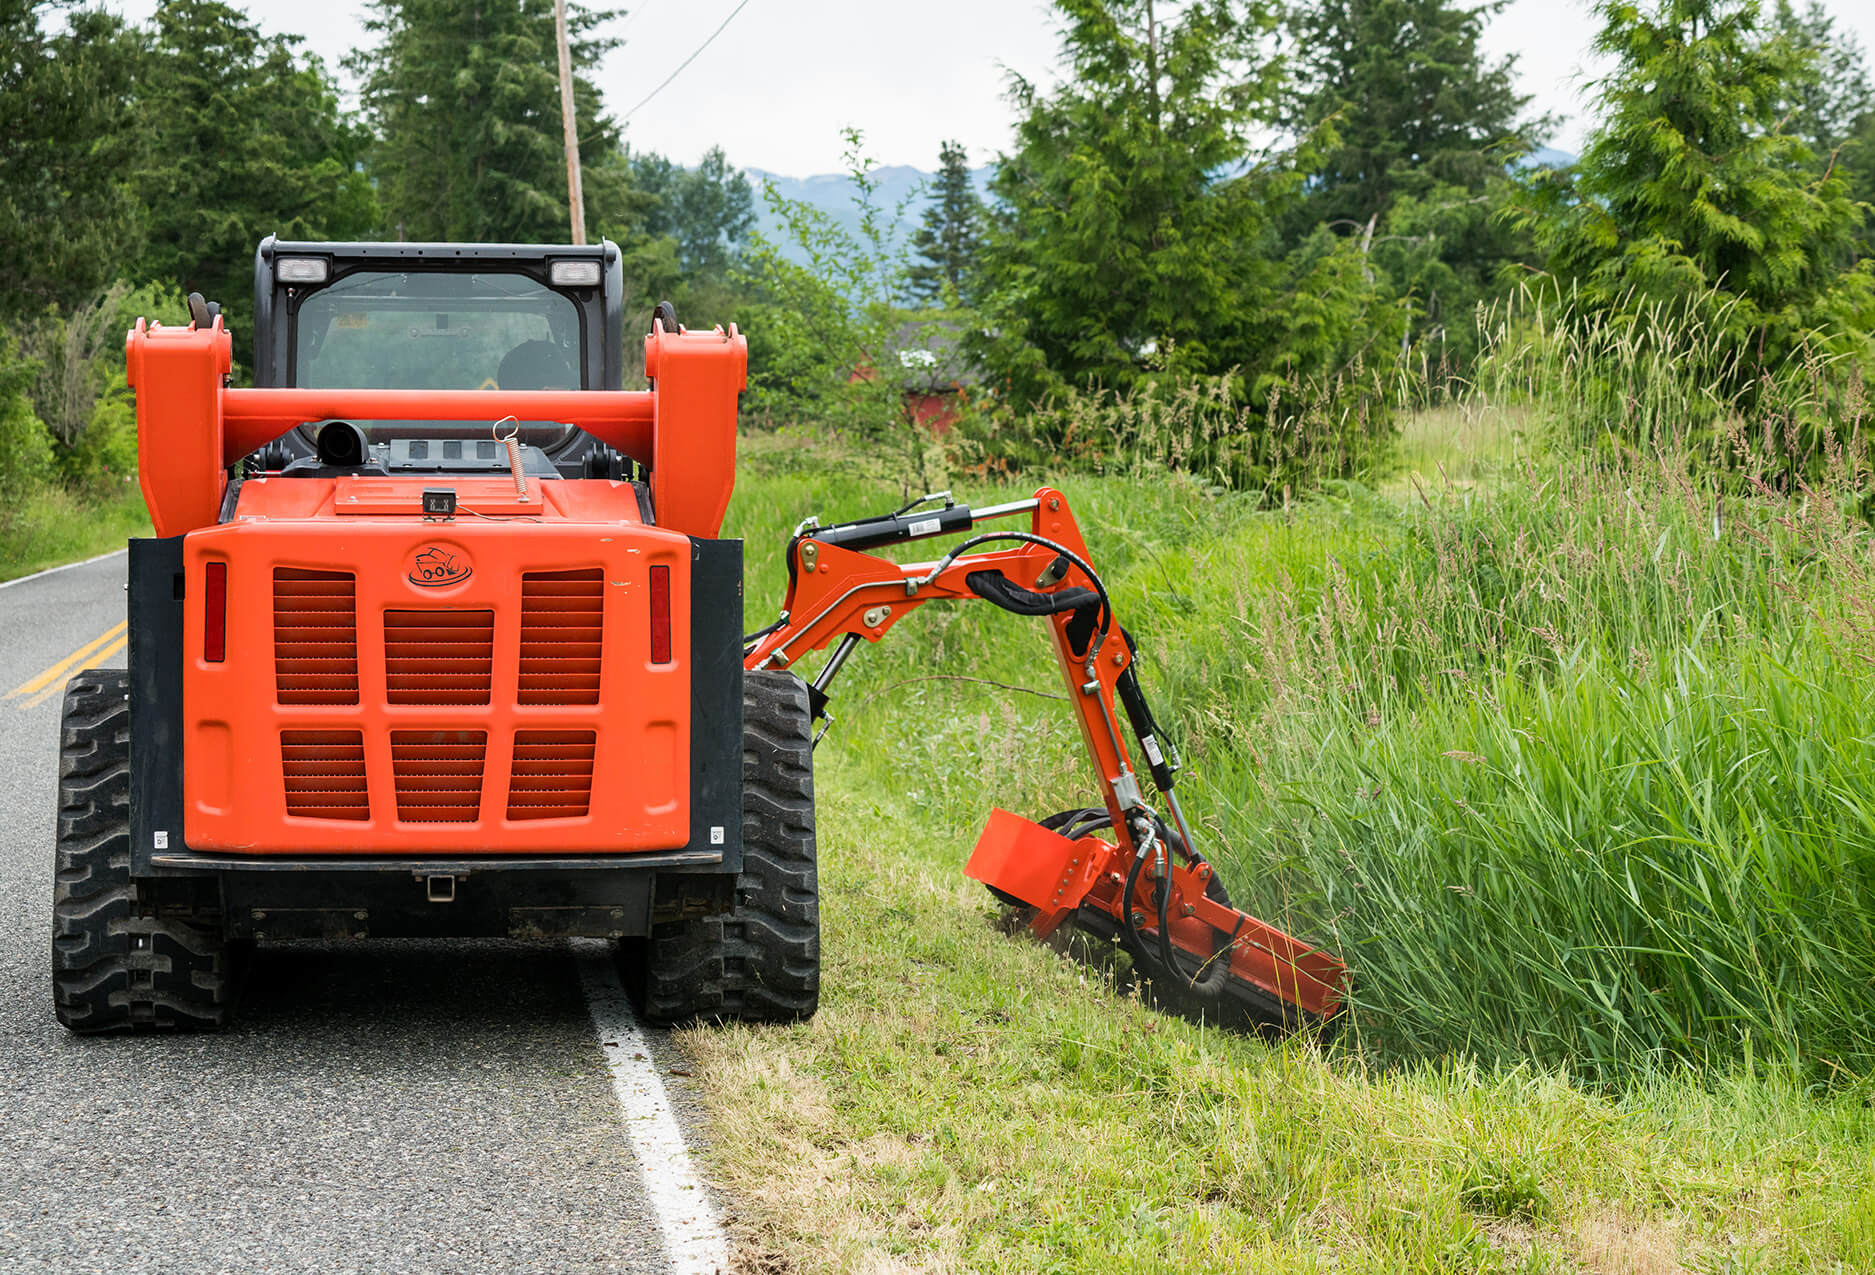 Eterra Sidewinder Skid Steer flail mower on Raptor boom arm mowing ditch back